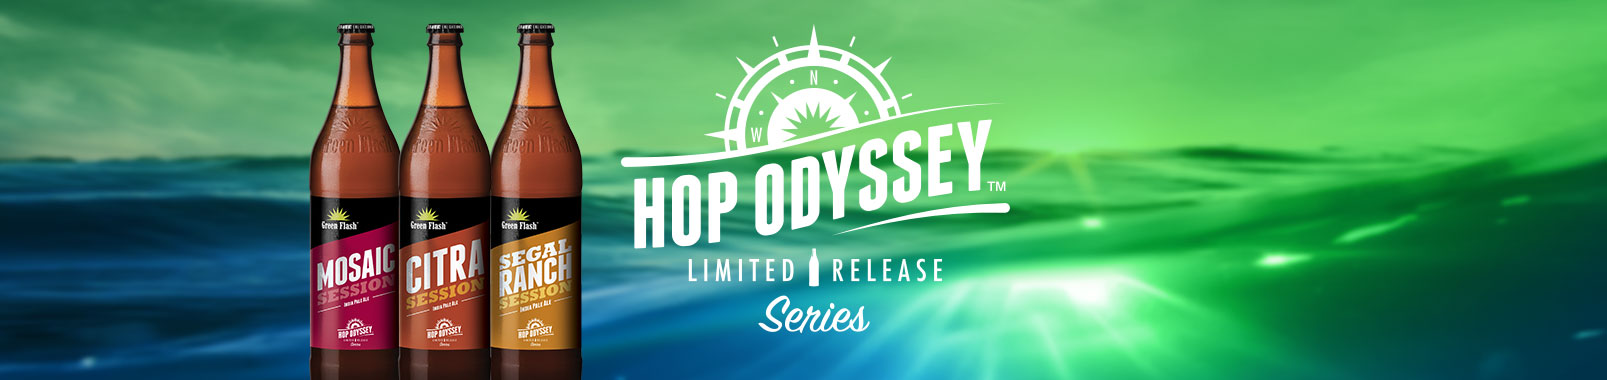 Hop Odyssey Limited Release Series